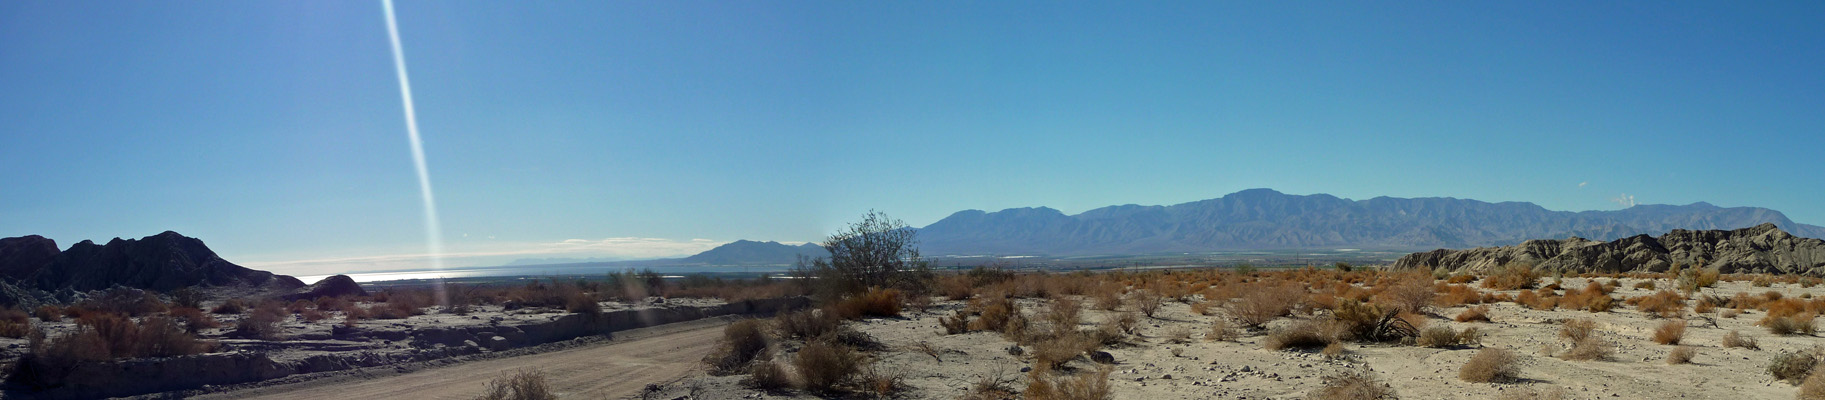 Salton Sea Little San Bernardino Range Choachella Valley